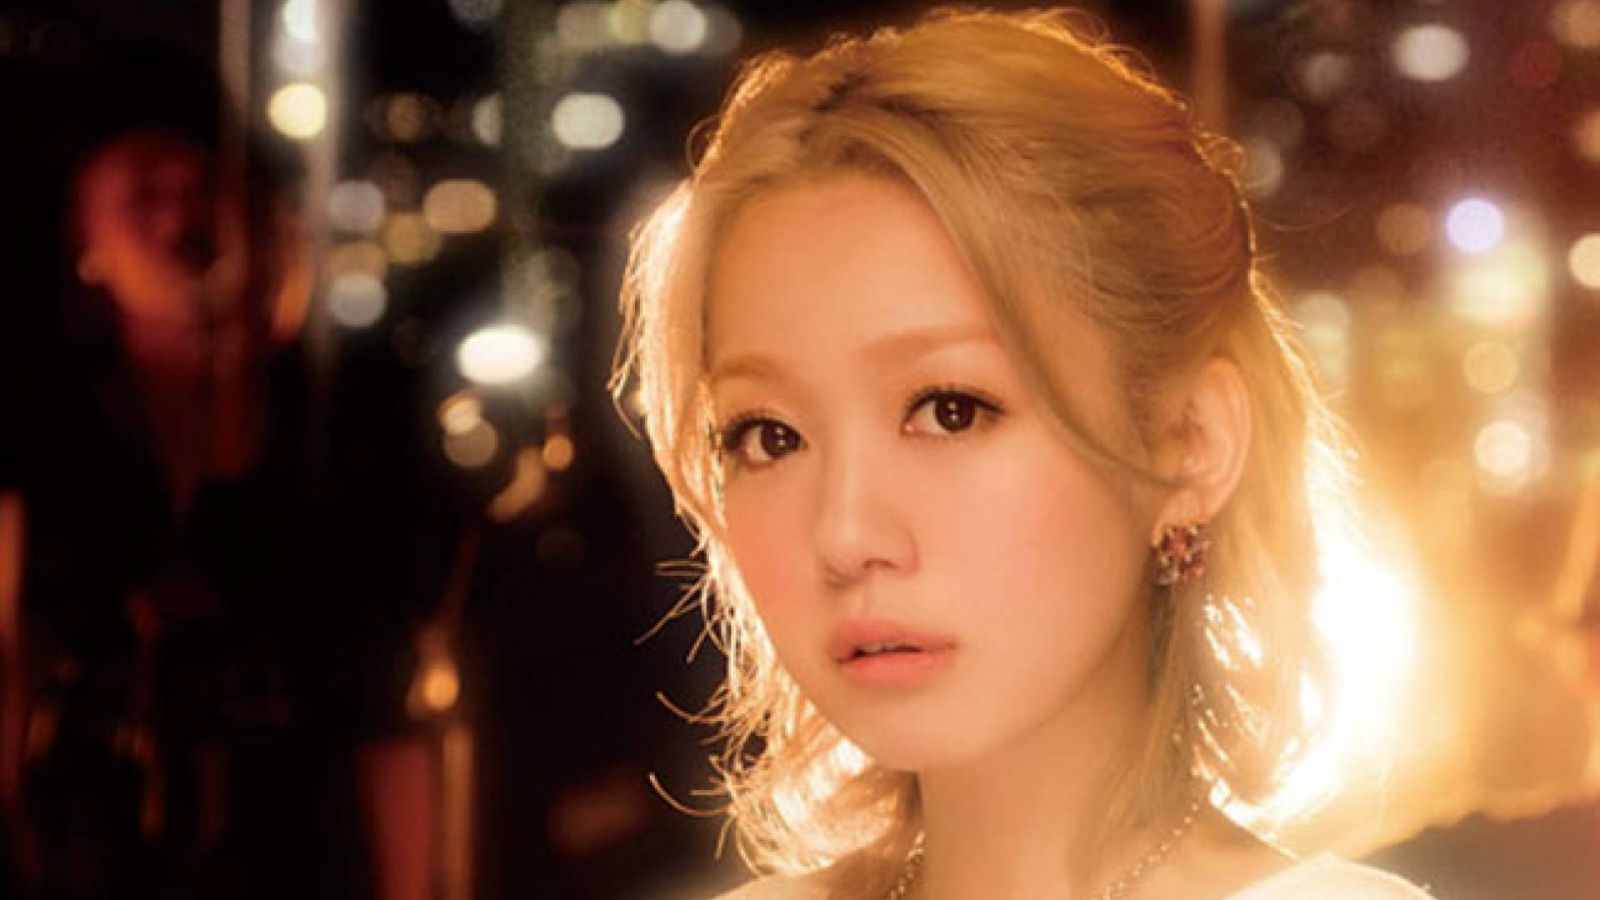 Nishino Kana © 2013 SME Records Inc. Provided by E-TALENTBANK.